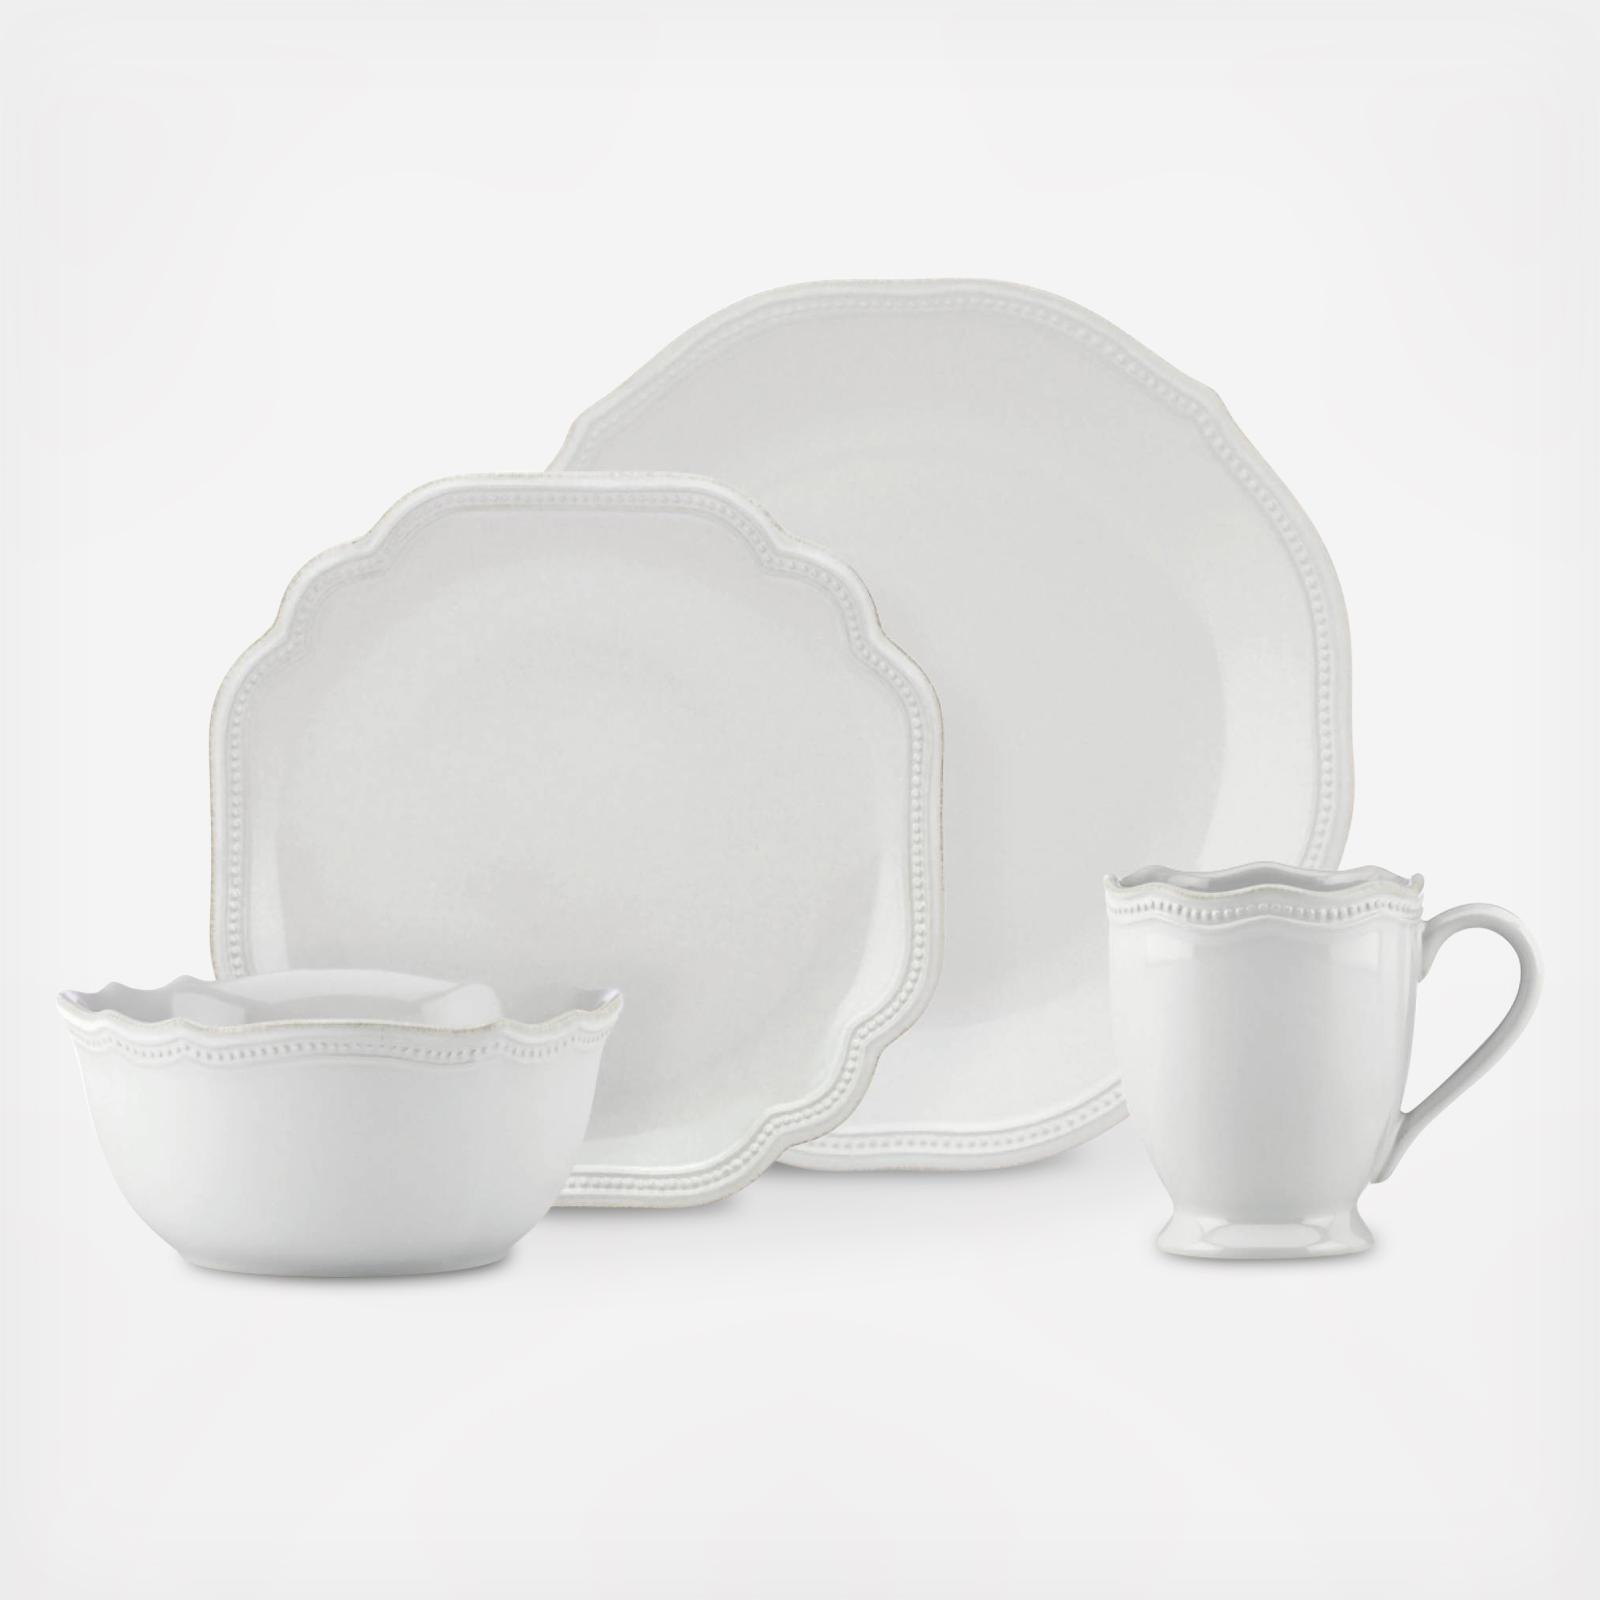 sc 1 st  Zola & French Perle Bead 4-Piece Place Setting | Zola